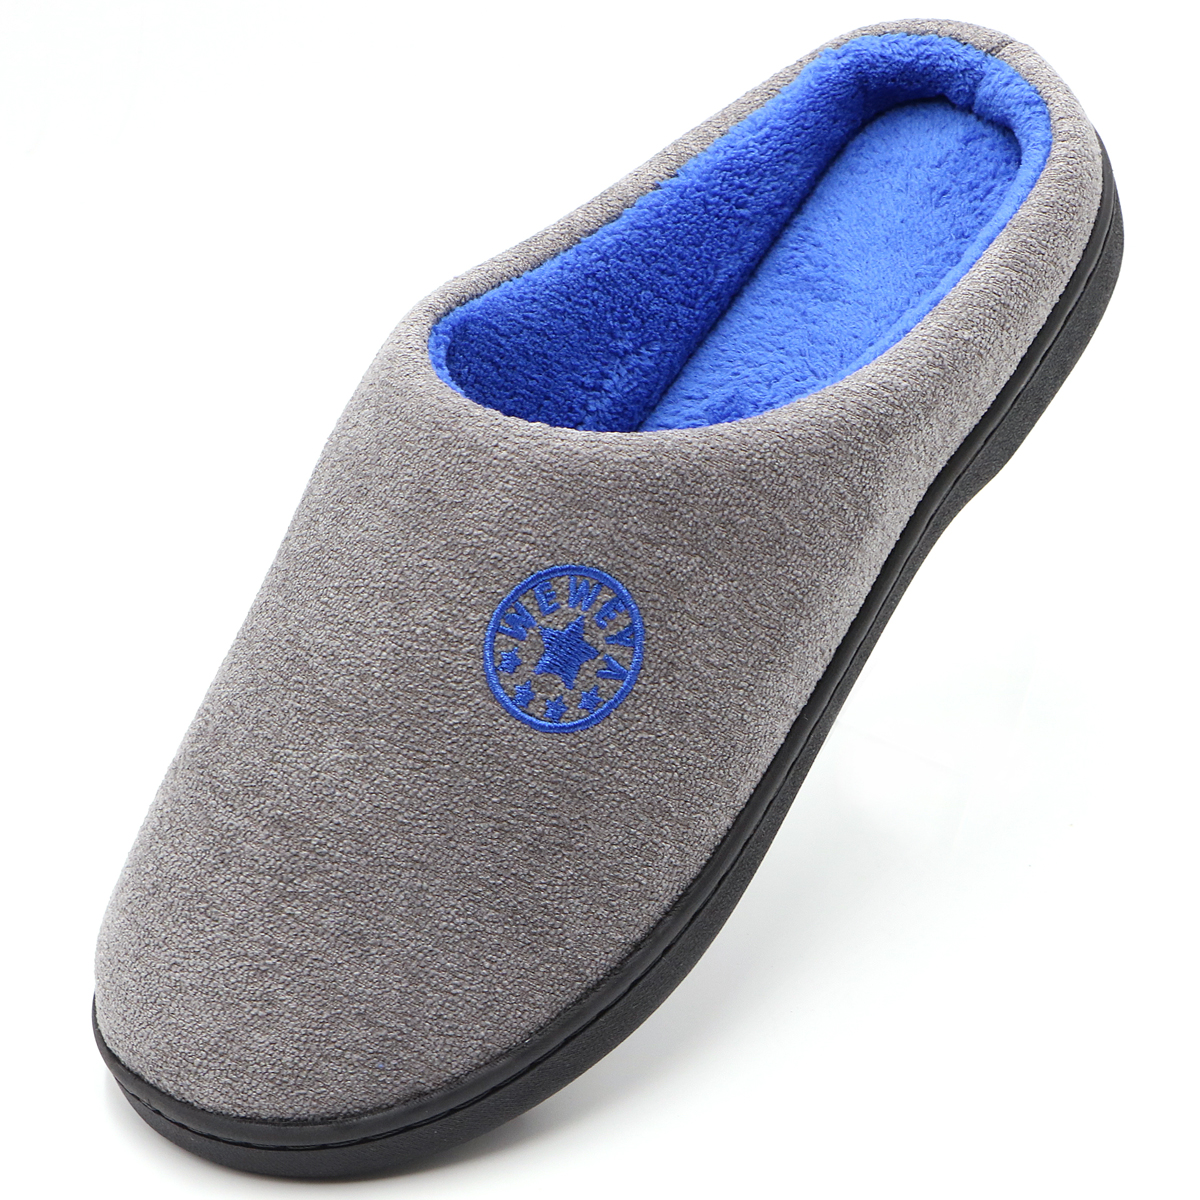 Shoes Men Slippers Warm Home Indoor Cotton Slippers Soft Men Non Slip Floor Shoes Couple Slides For Bedroom Pantoufles De Coton